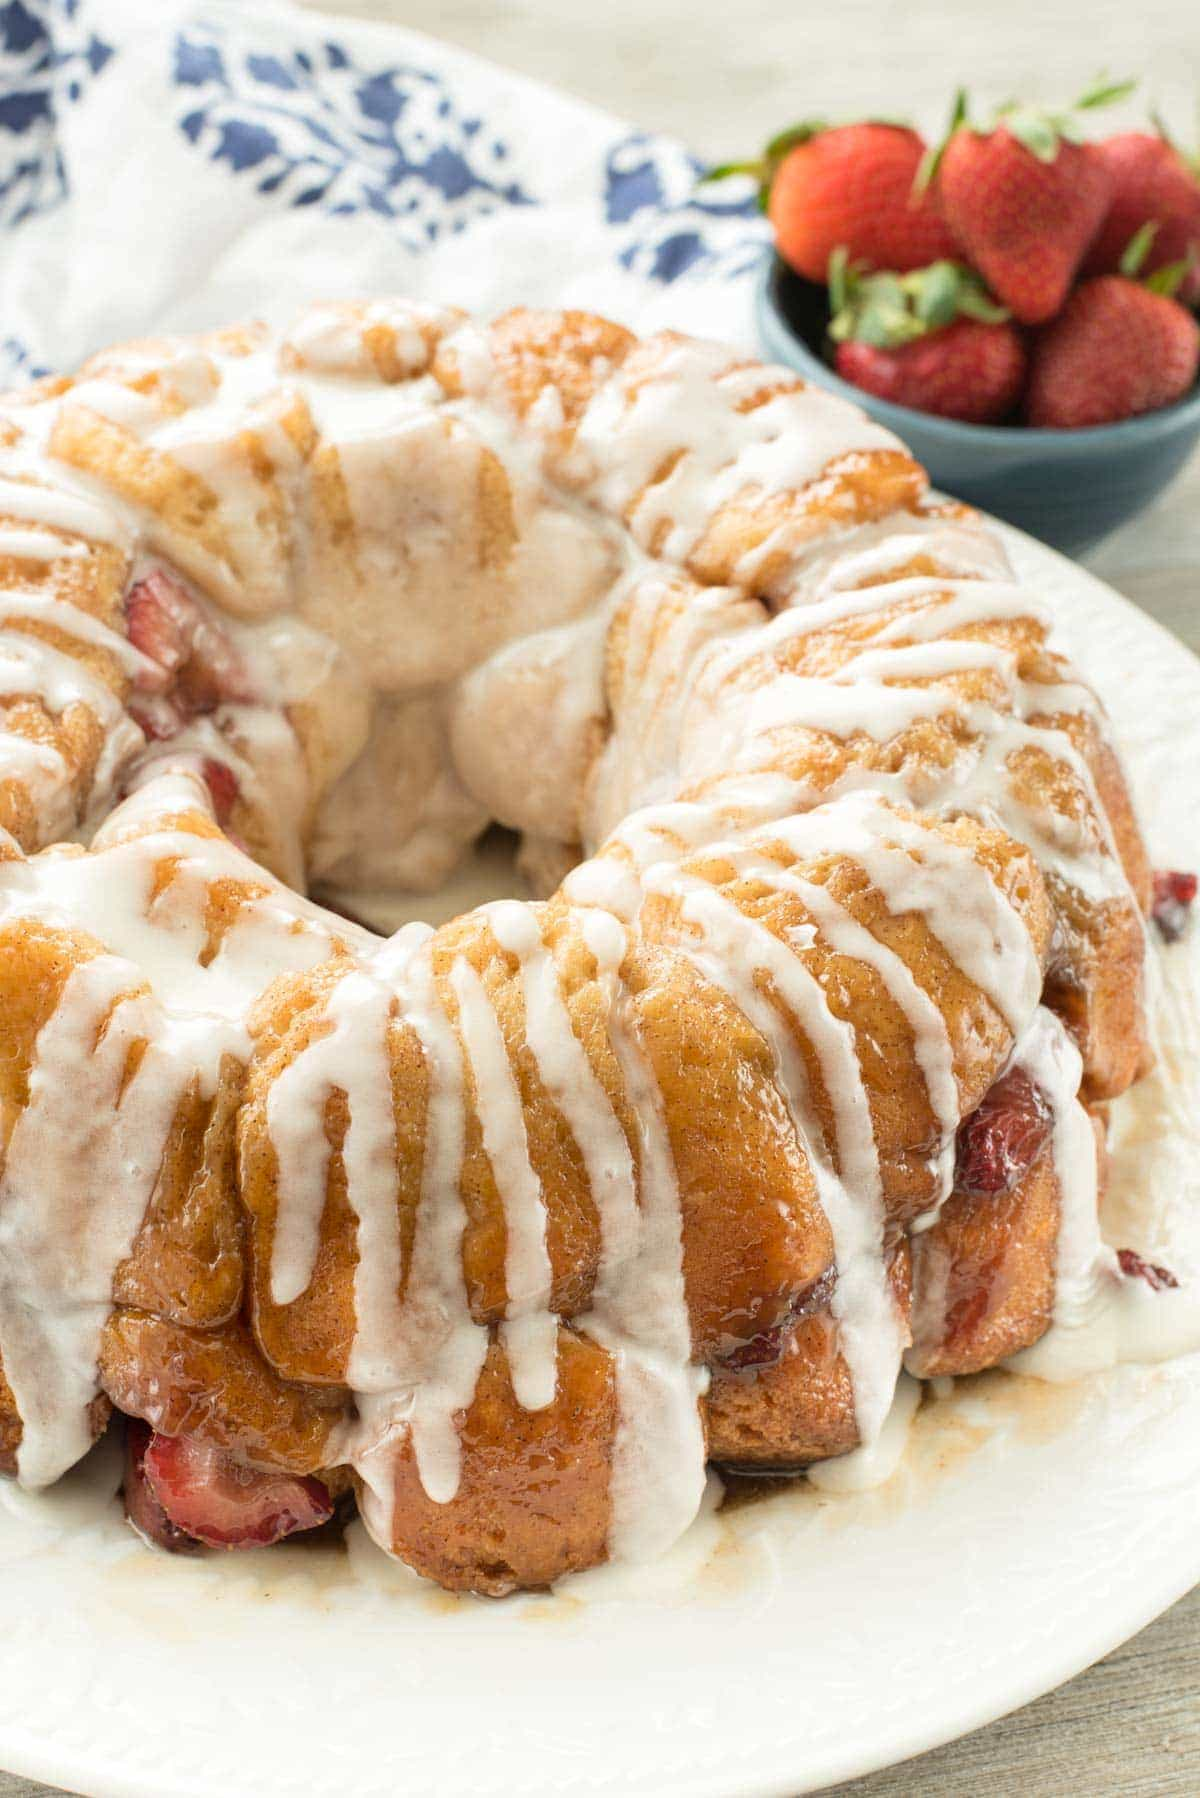 EASY Strawberry Monkey Bread with a sweet creamy glaze - this simple brunch recipe is classic monkey bread filled with fresh strawberries and a sweet glaze on top. We all loved it!